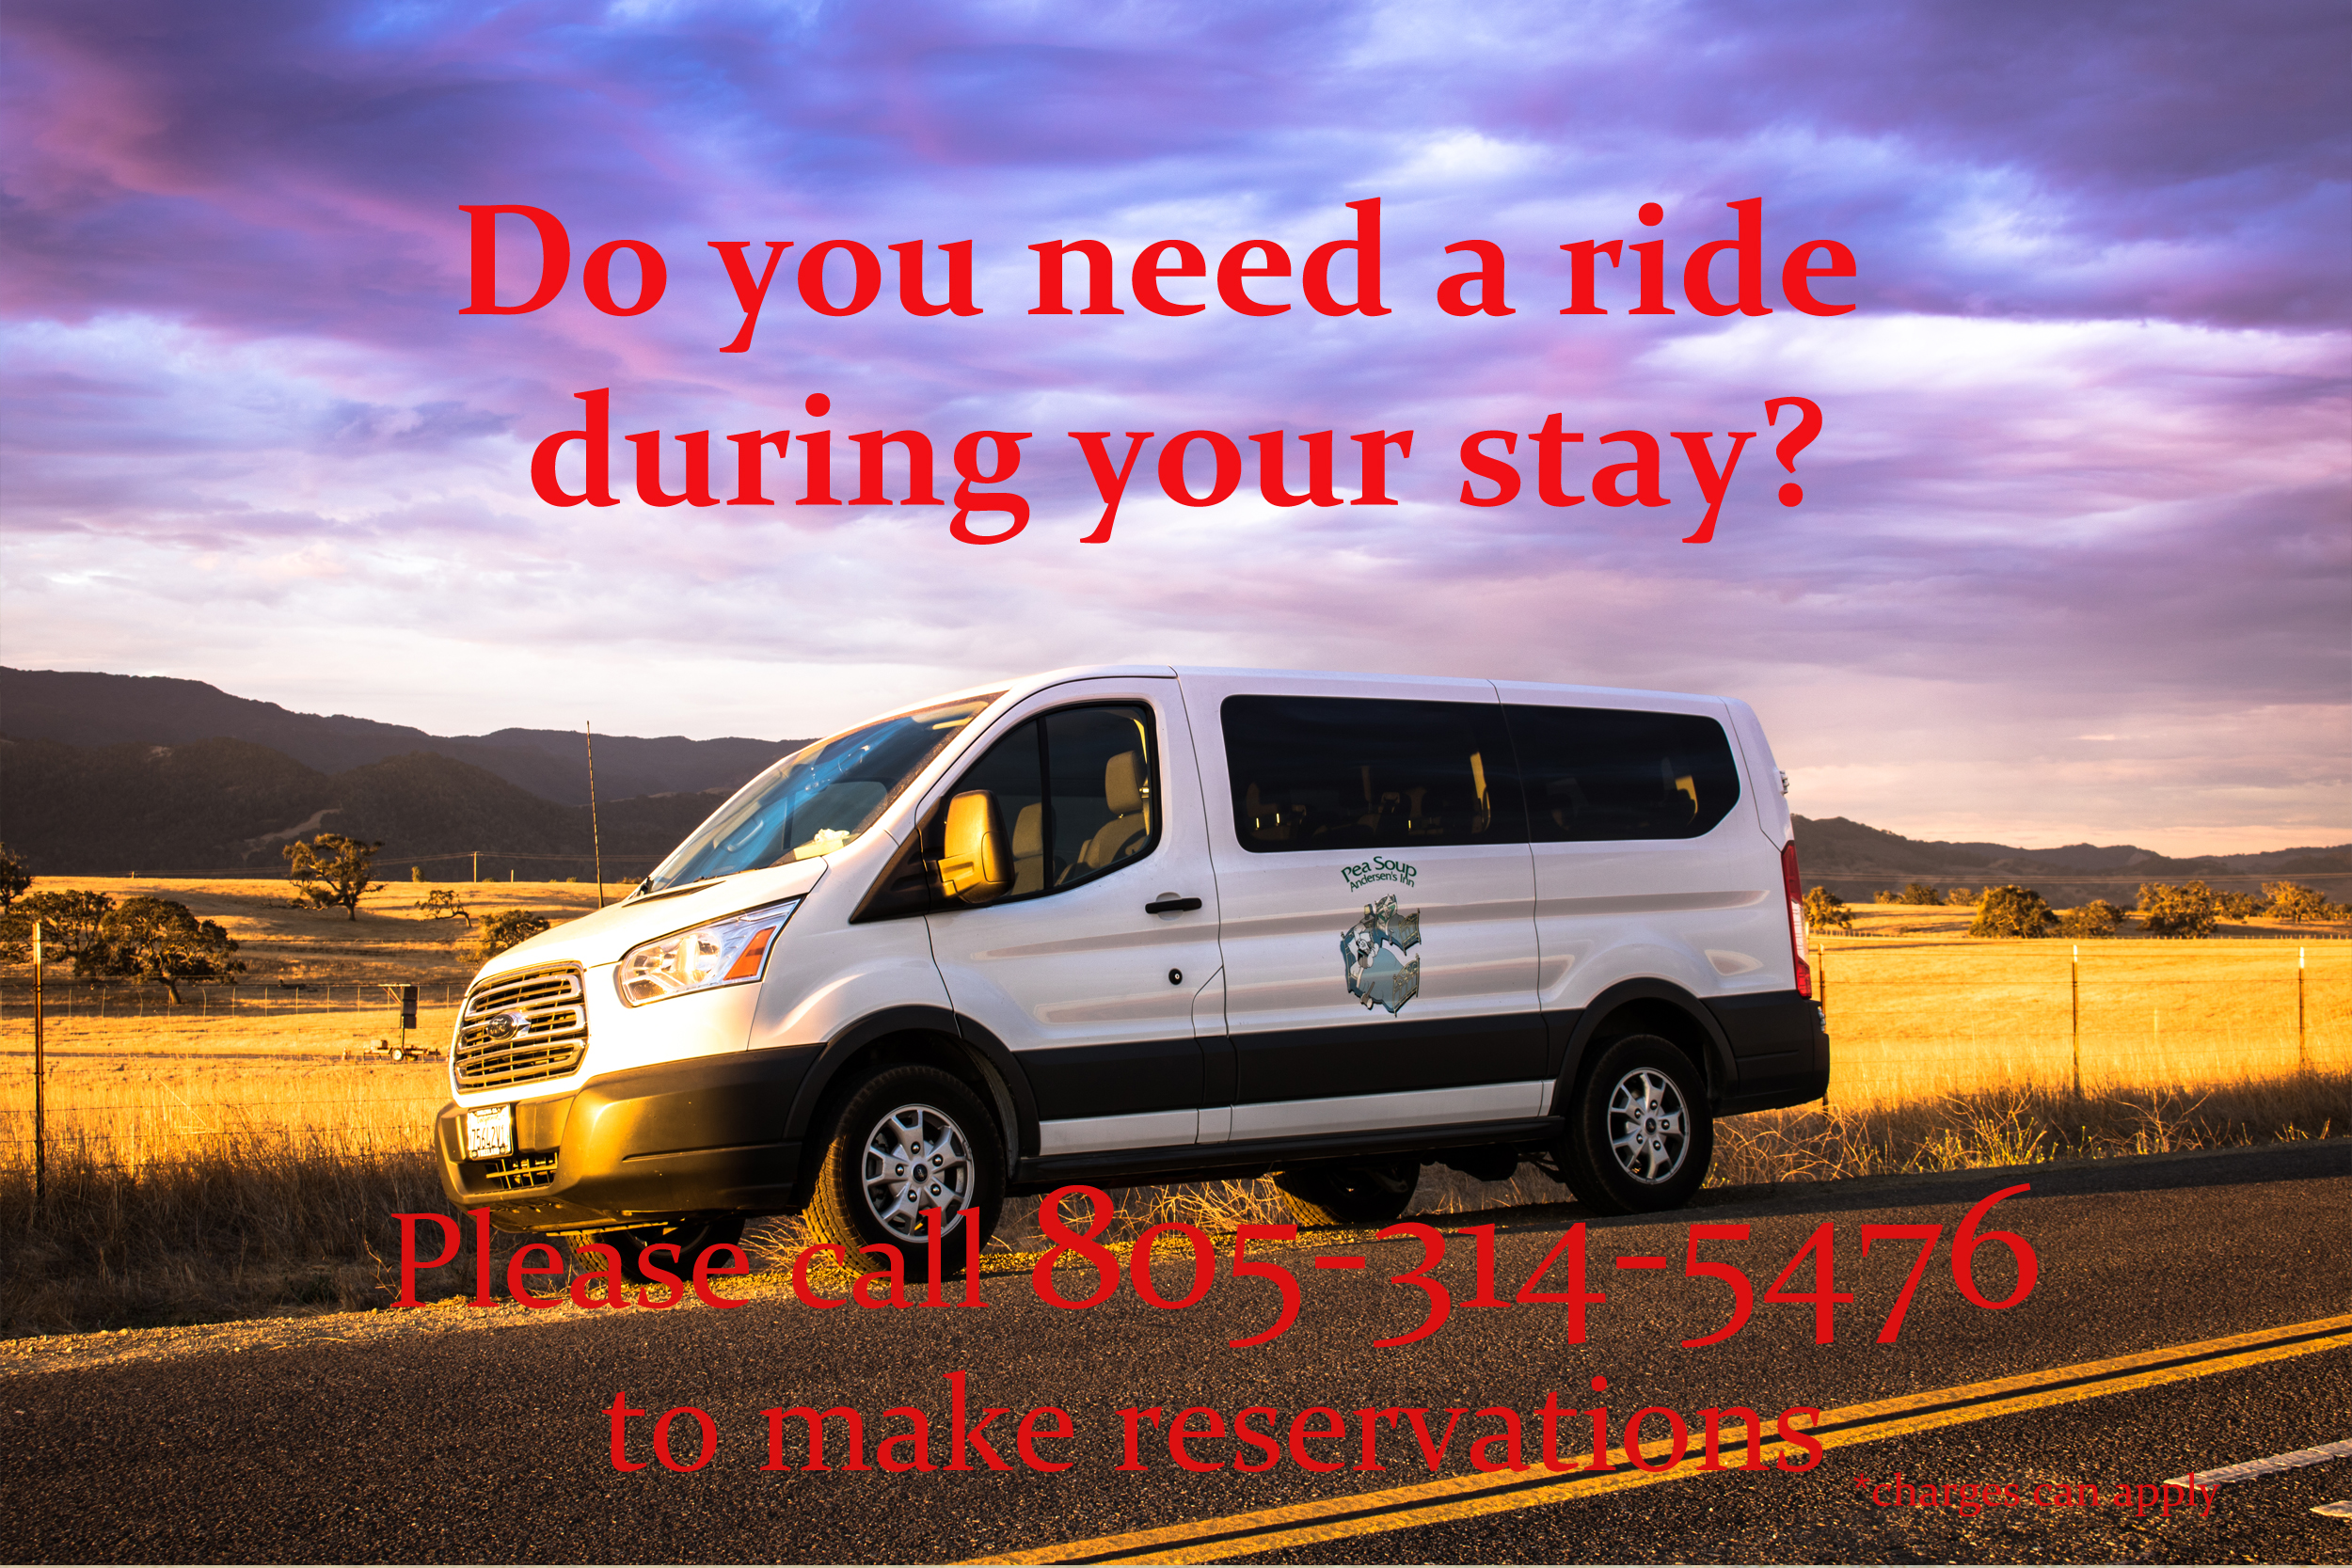 Call for wine tour, golf packages and more.